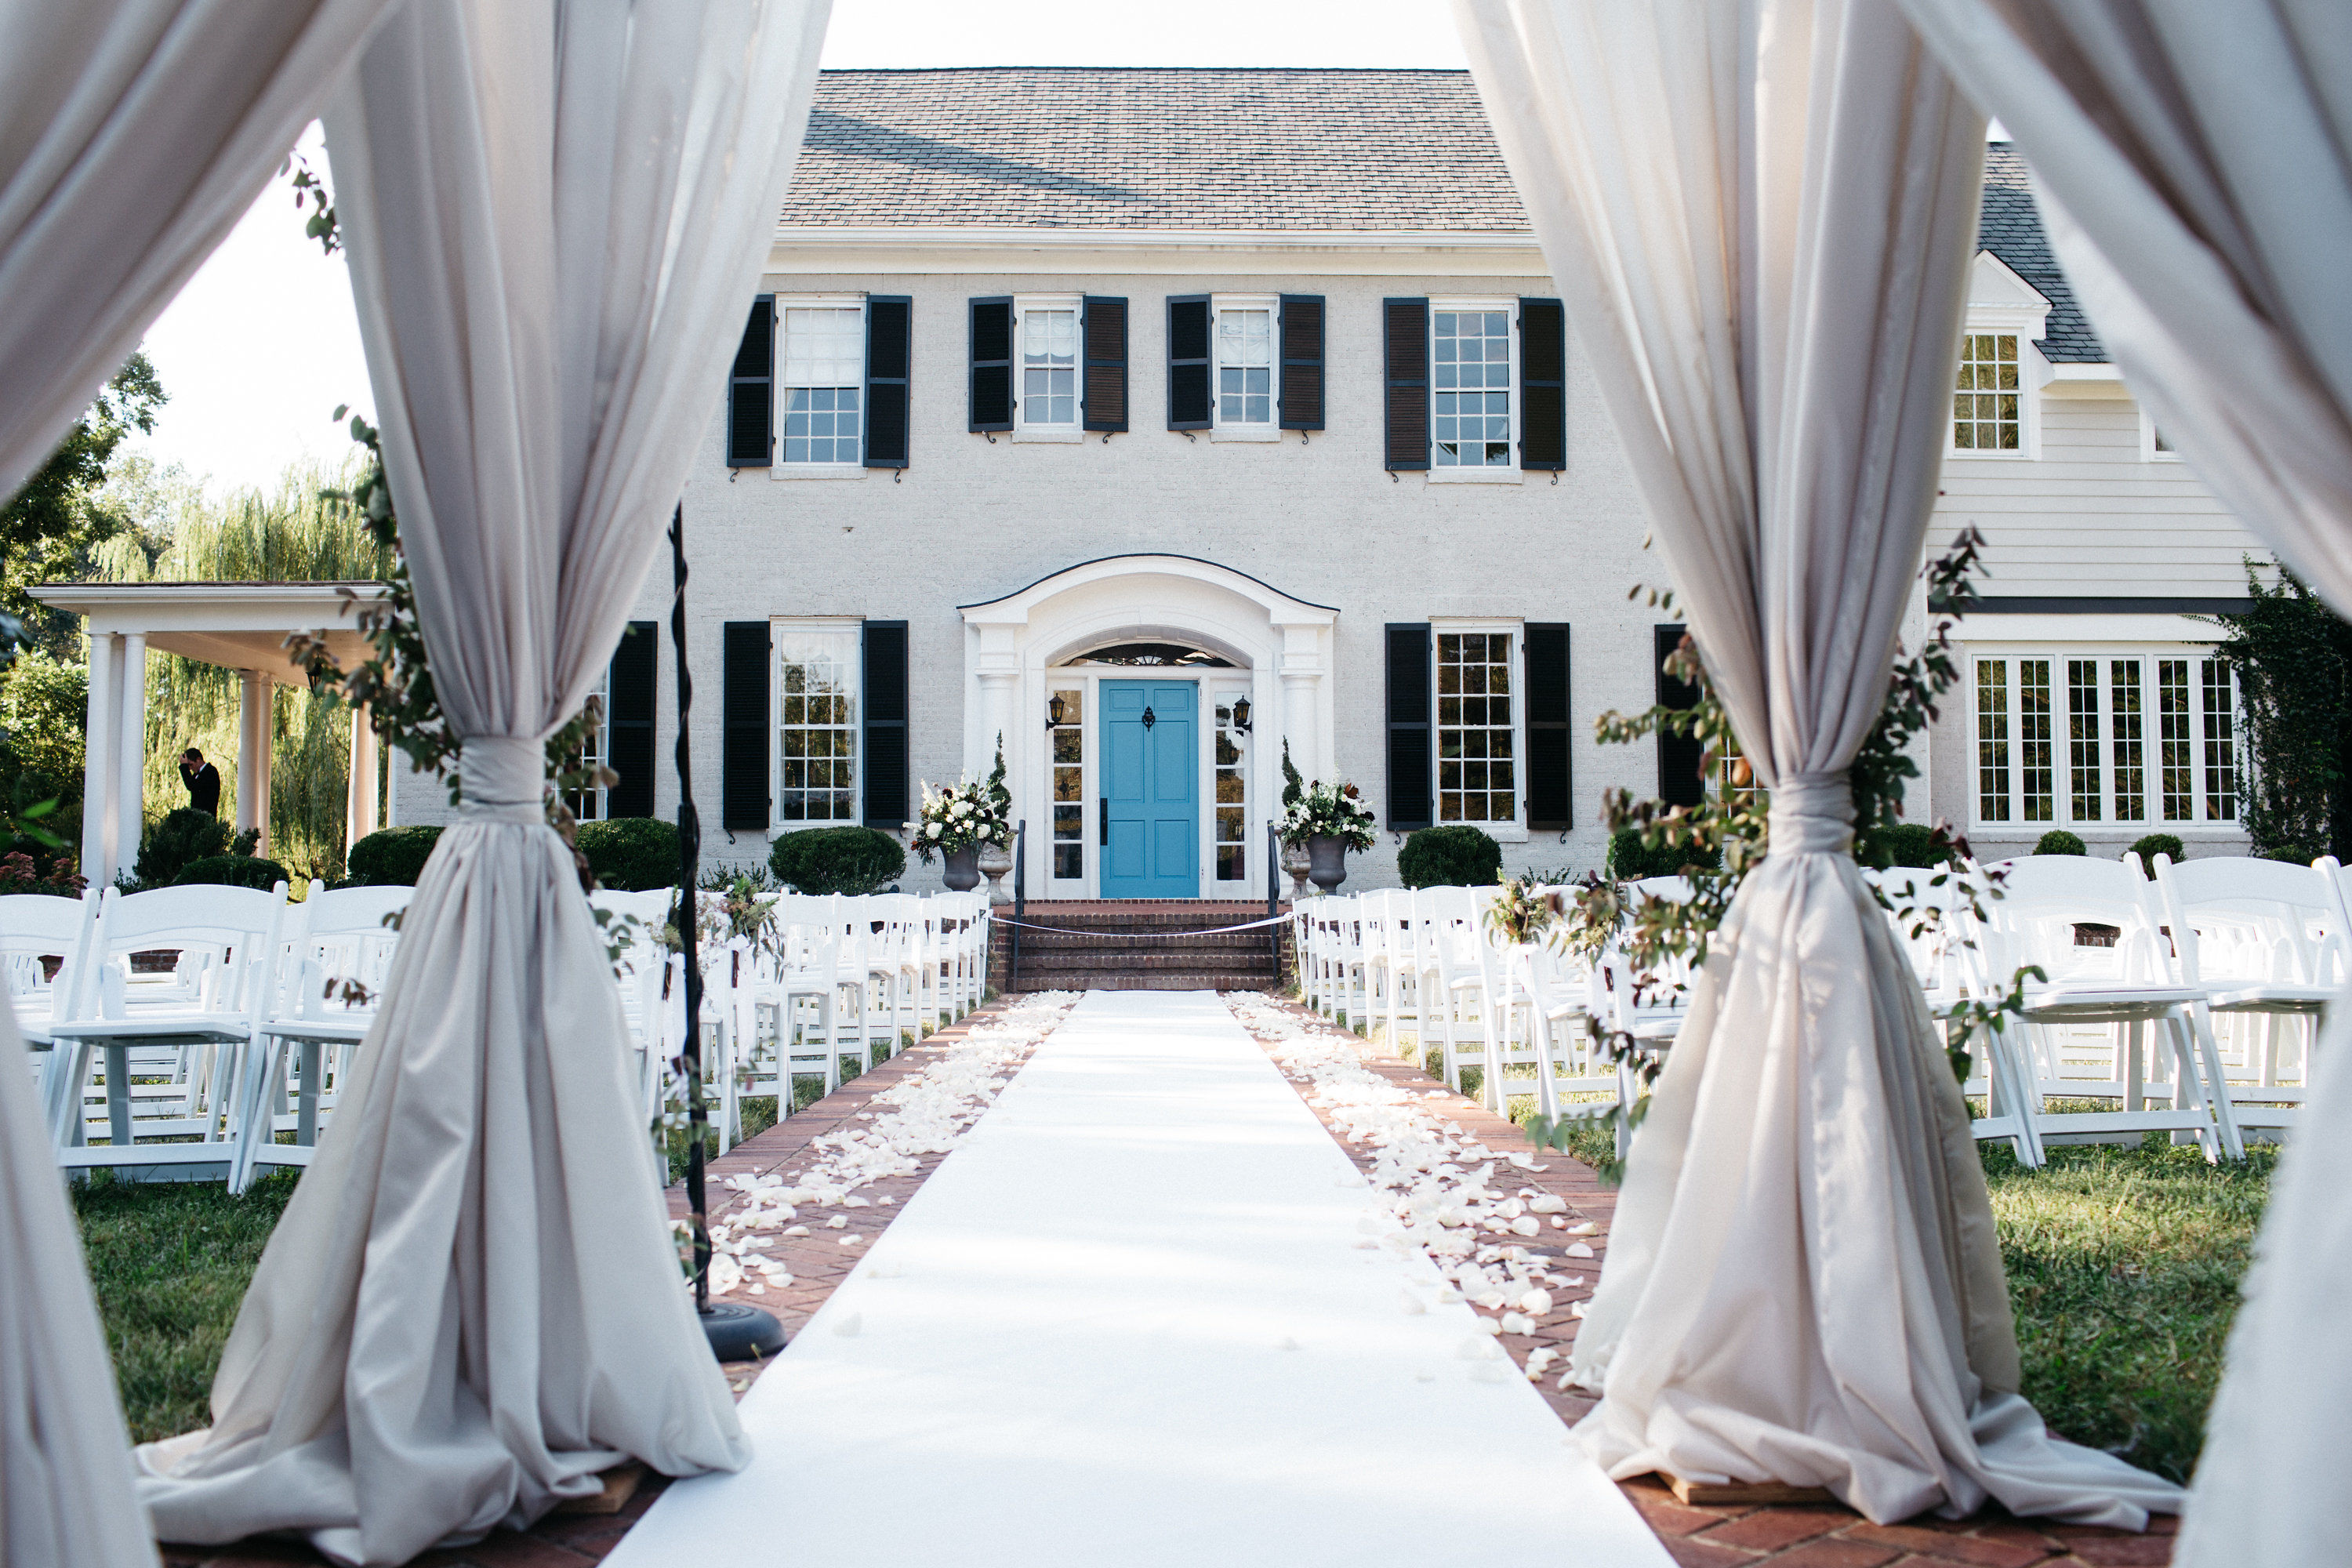 10 Things You Didn't Know About Hosting a Wedding at Home